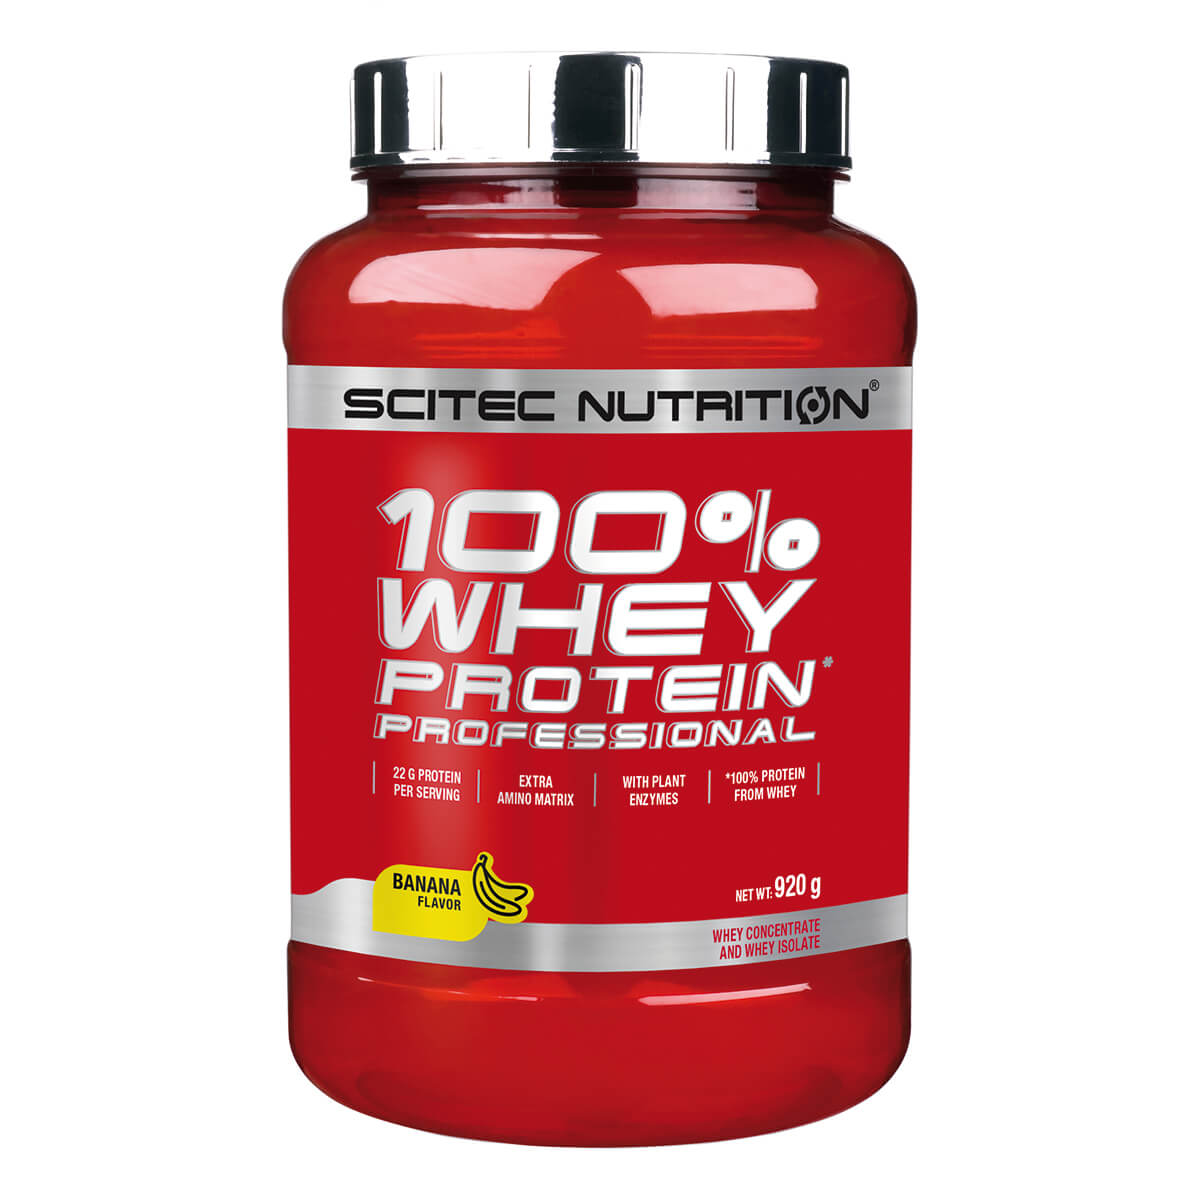 100% Whey Protein Professional, 920g